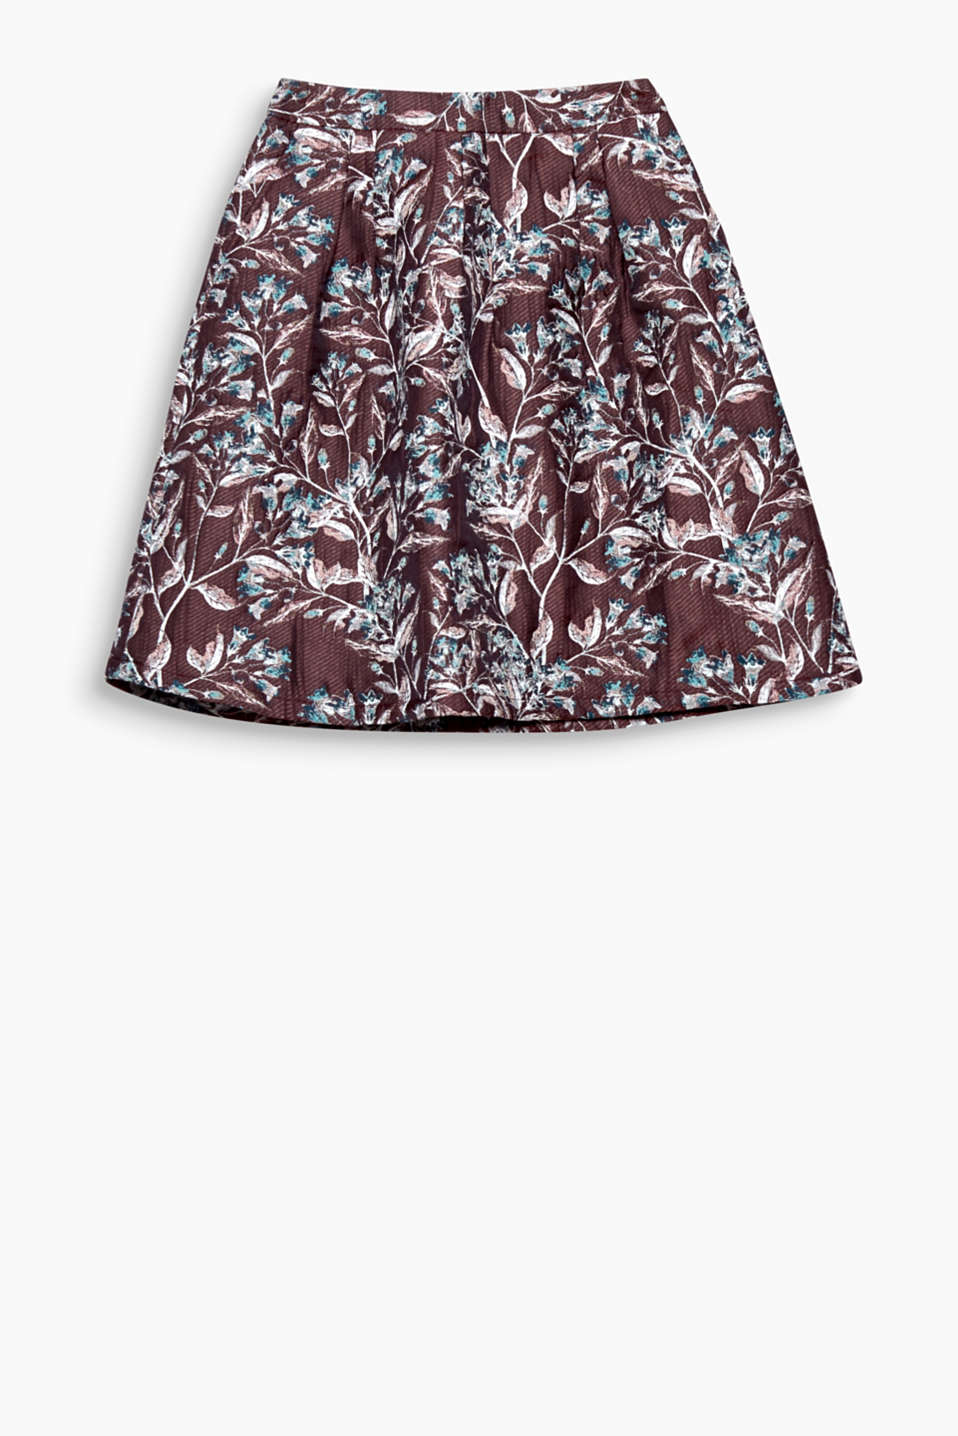 Autumnal jacquard flowers give this flared skirt its unique feminine style.